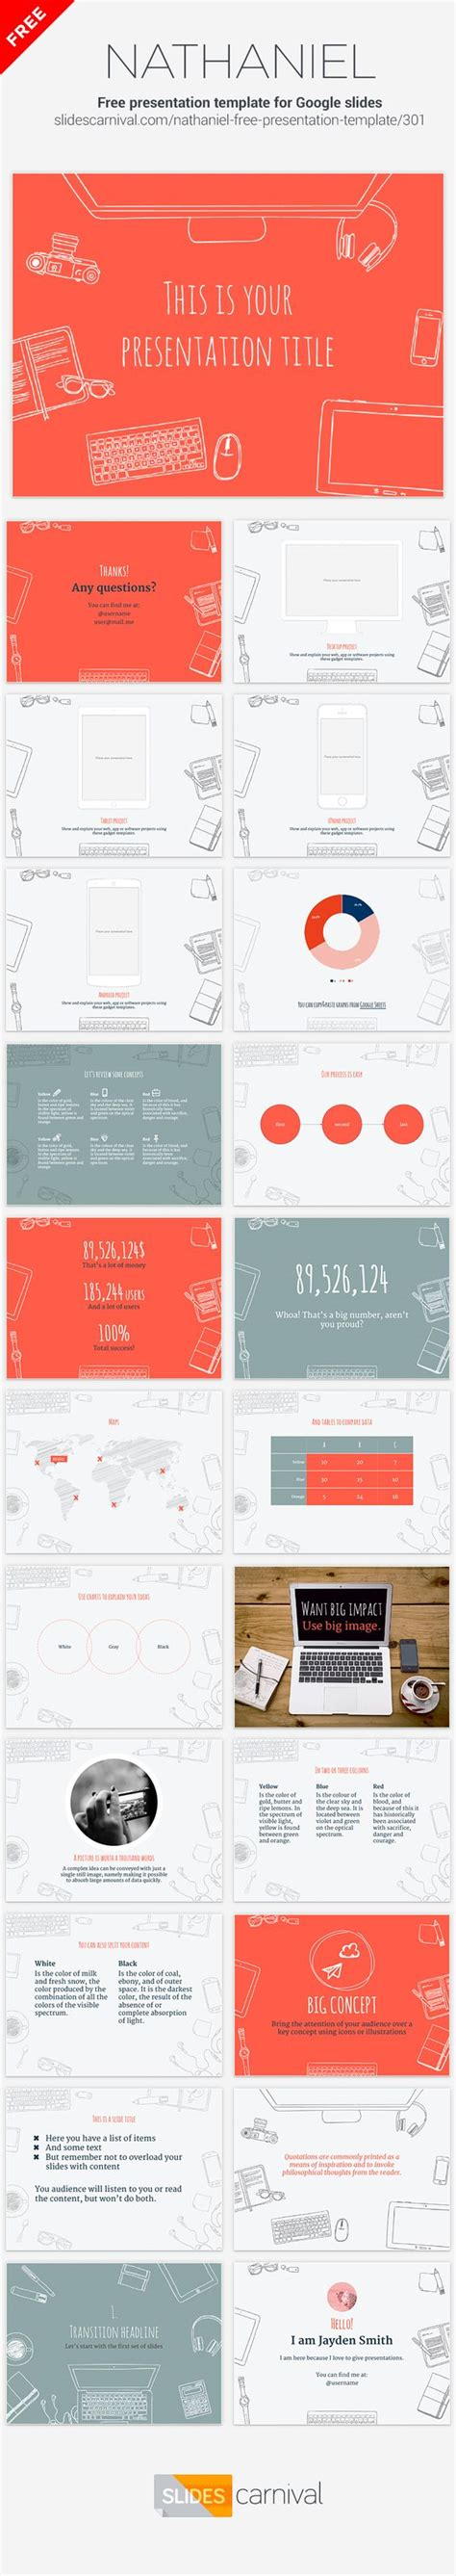 Free Presentation Templates Templates And Presentation On Pinterest Free Will Maker Templates